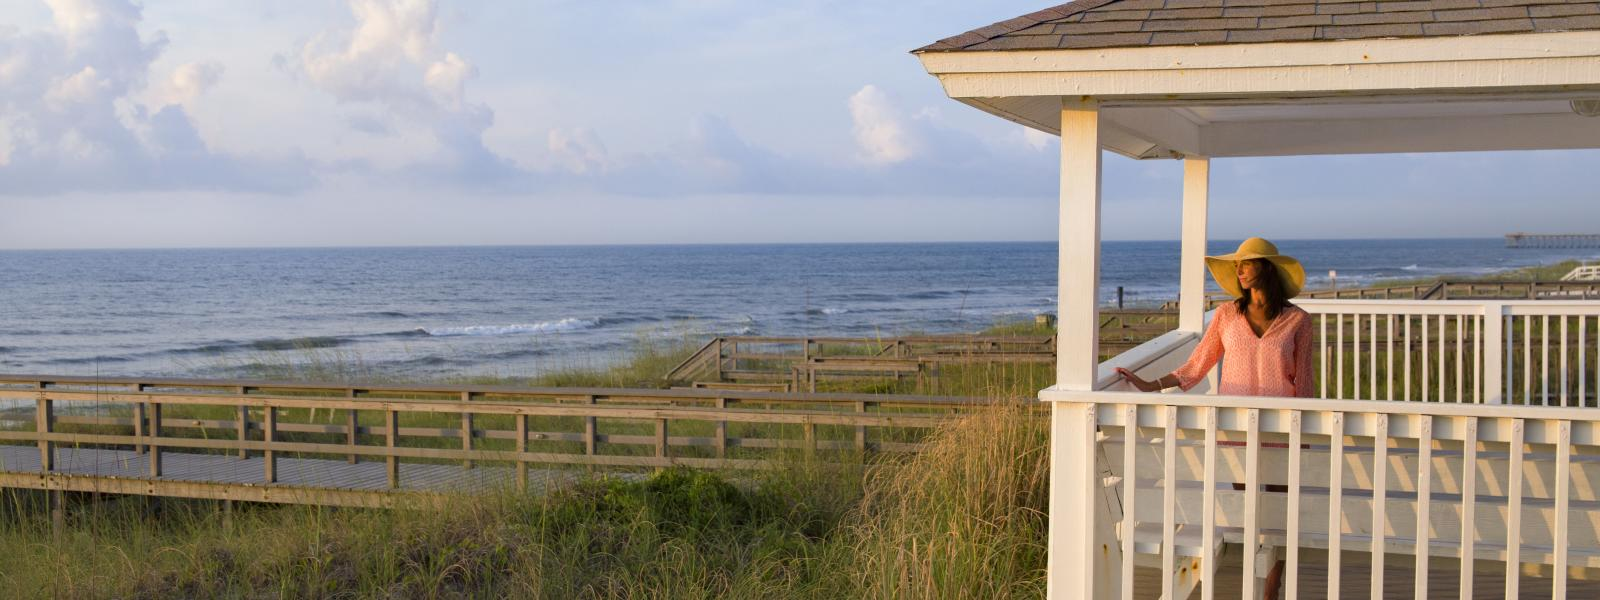 Kure Beach Area Information About Nc